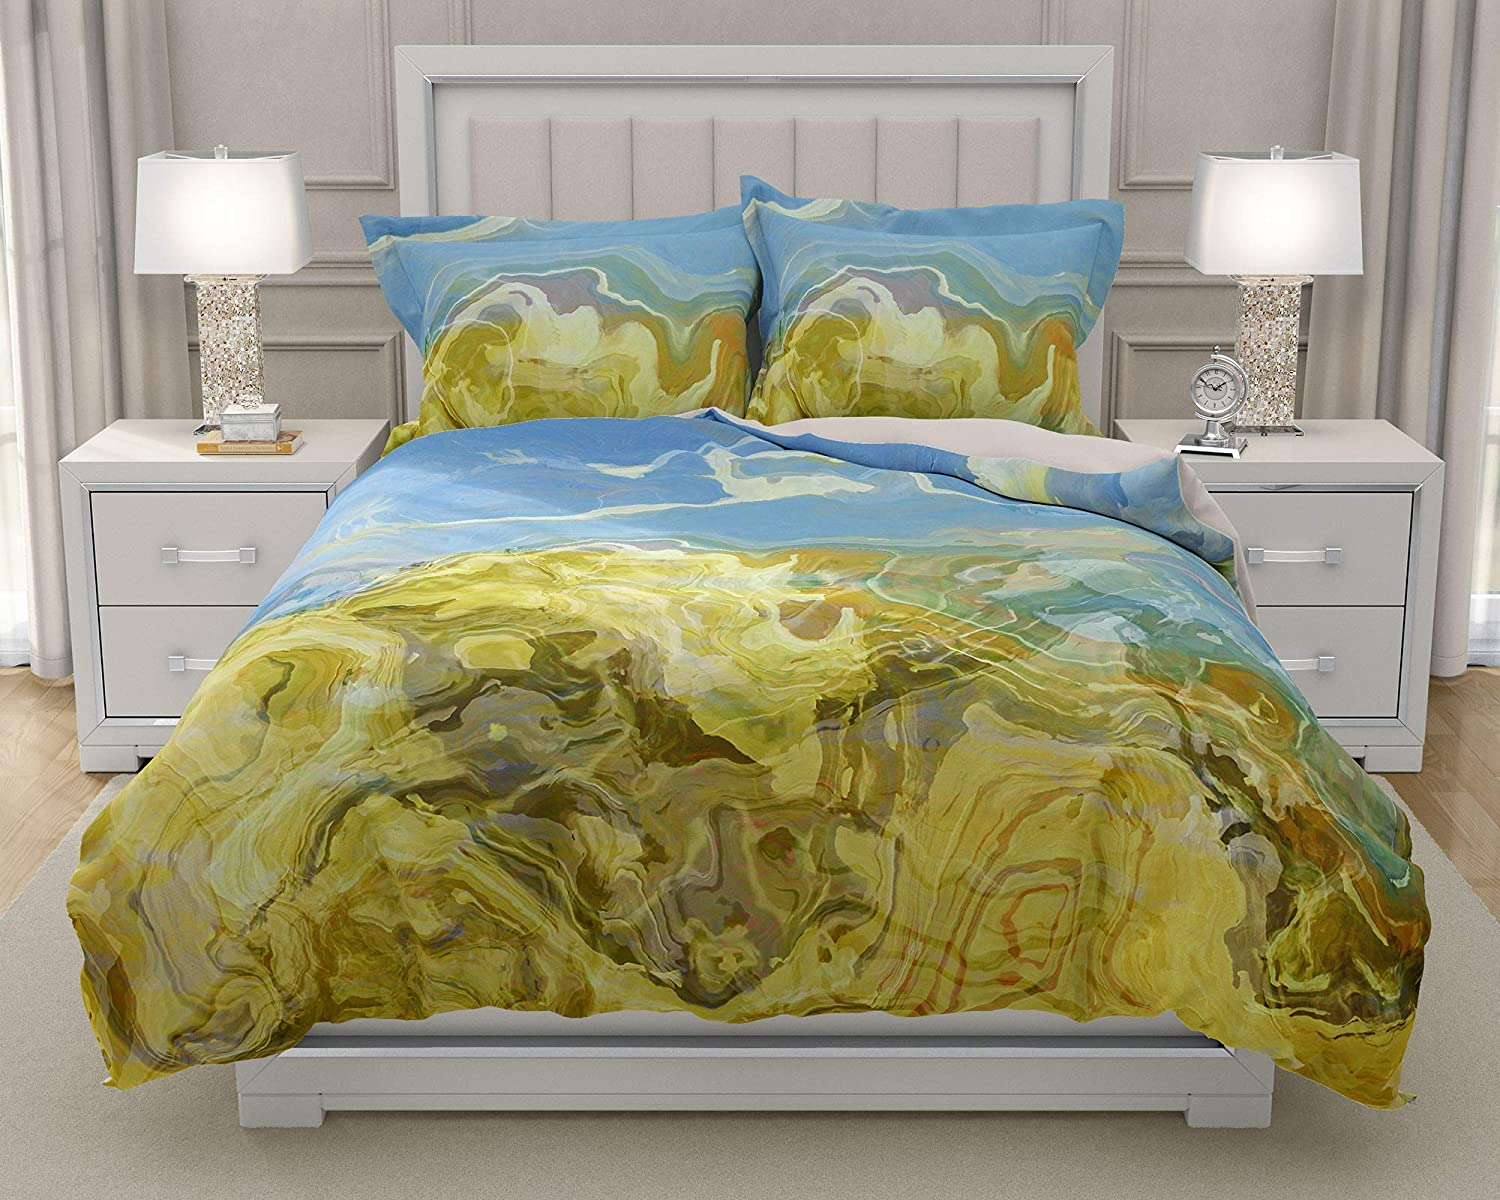 Image of Home and Kitchen King or Queen 3 pc Duvet Cover Set with abstract art, Dune Scape